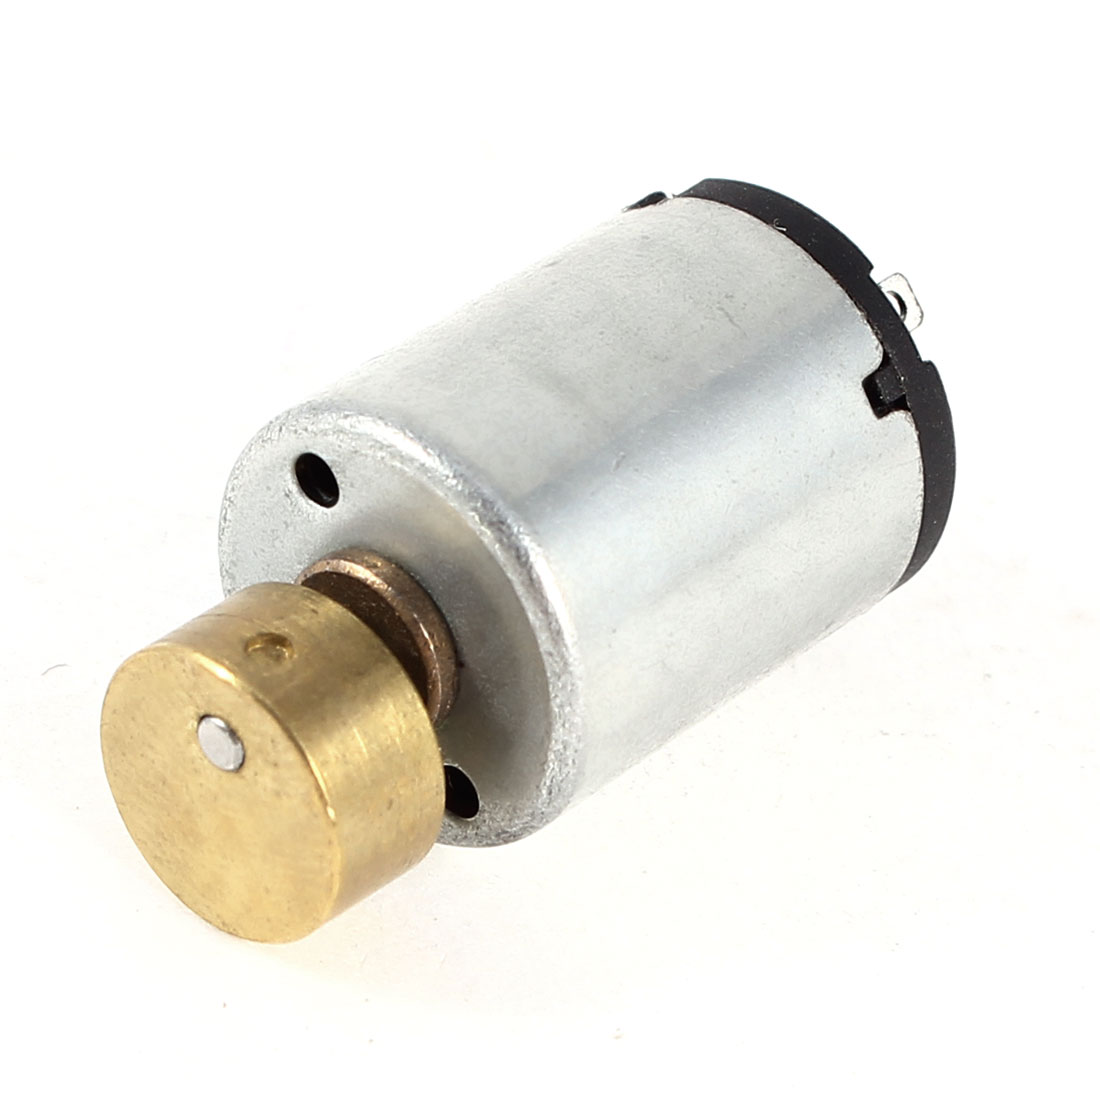 10000RPM DC 3-6V Magnetic Vibrating Vibration Motor for Car Seat Massagers